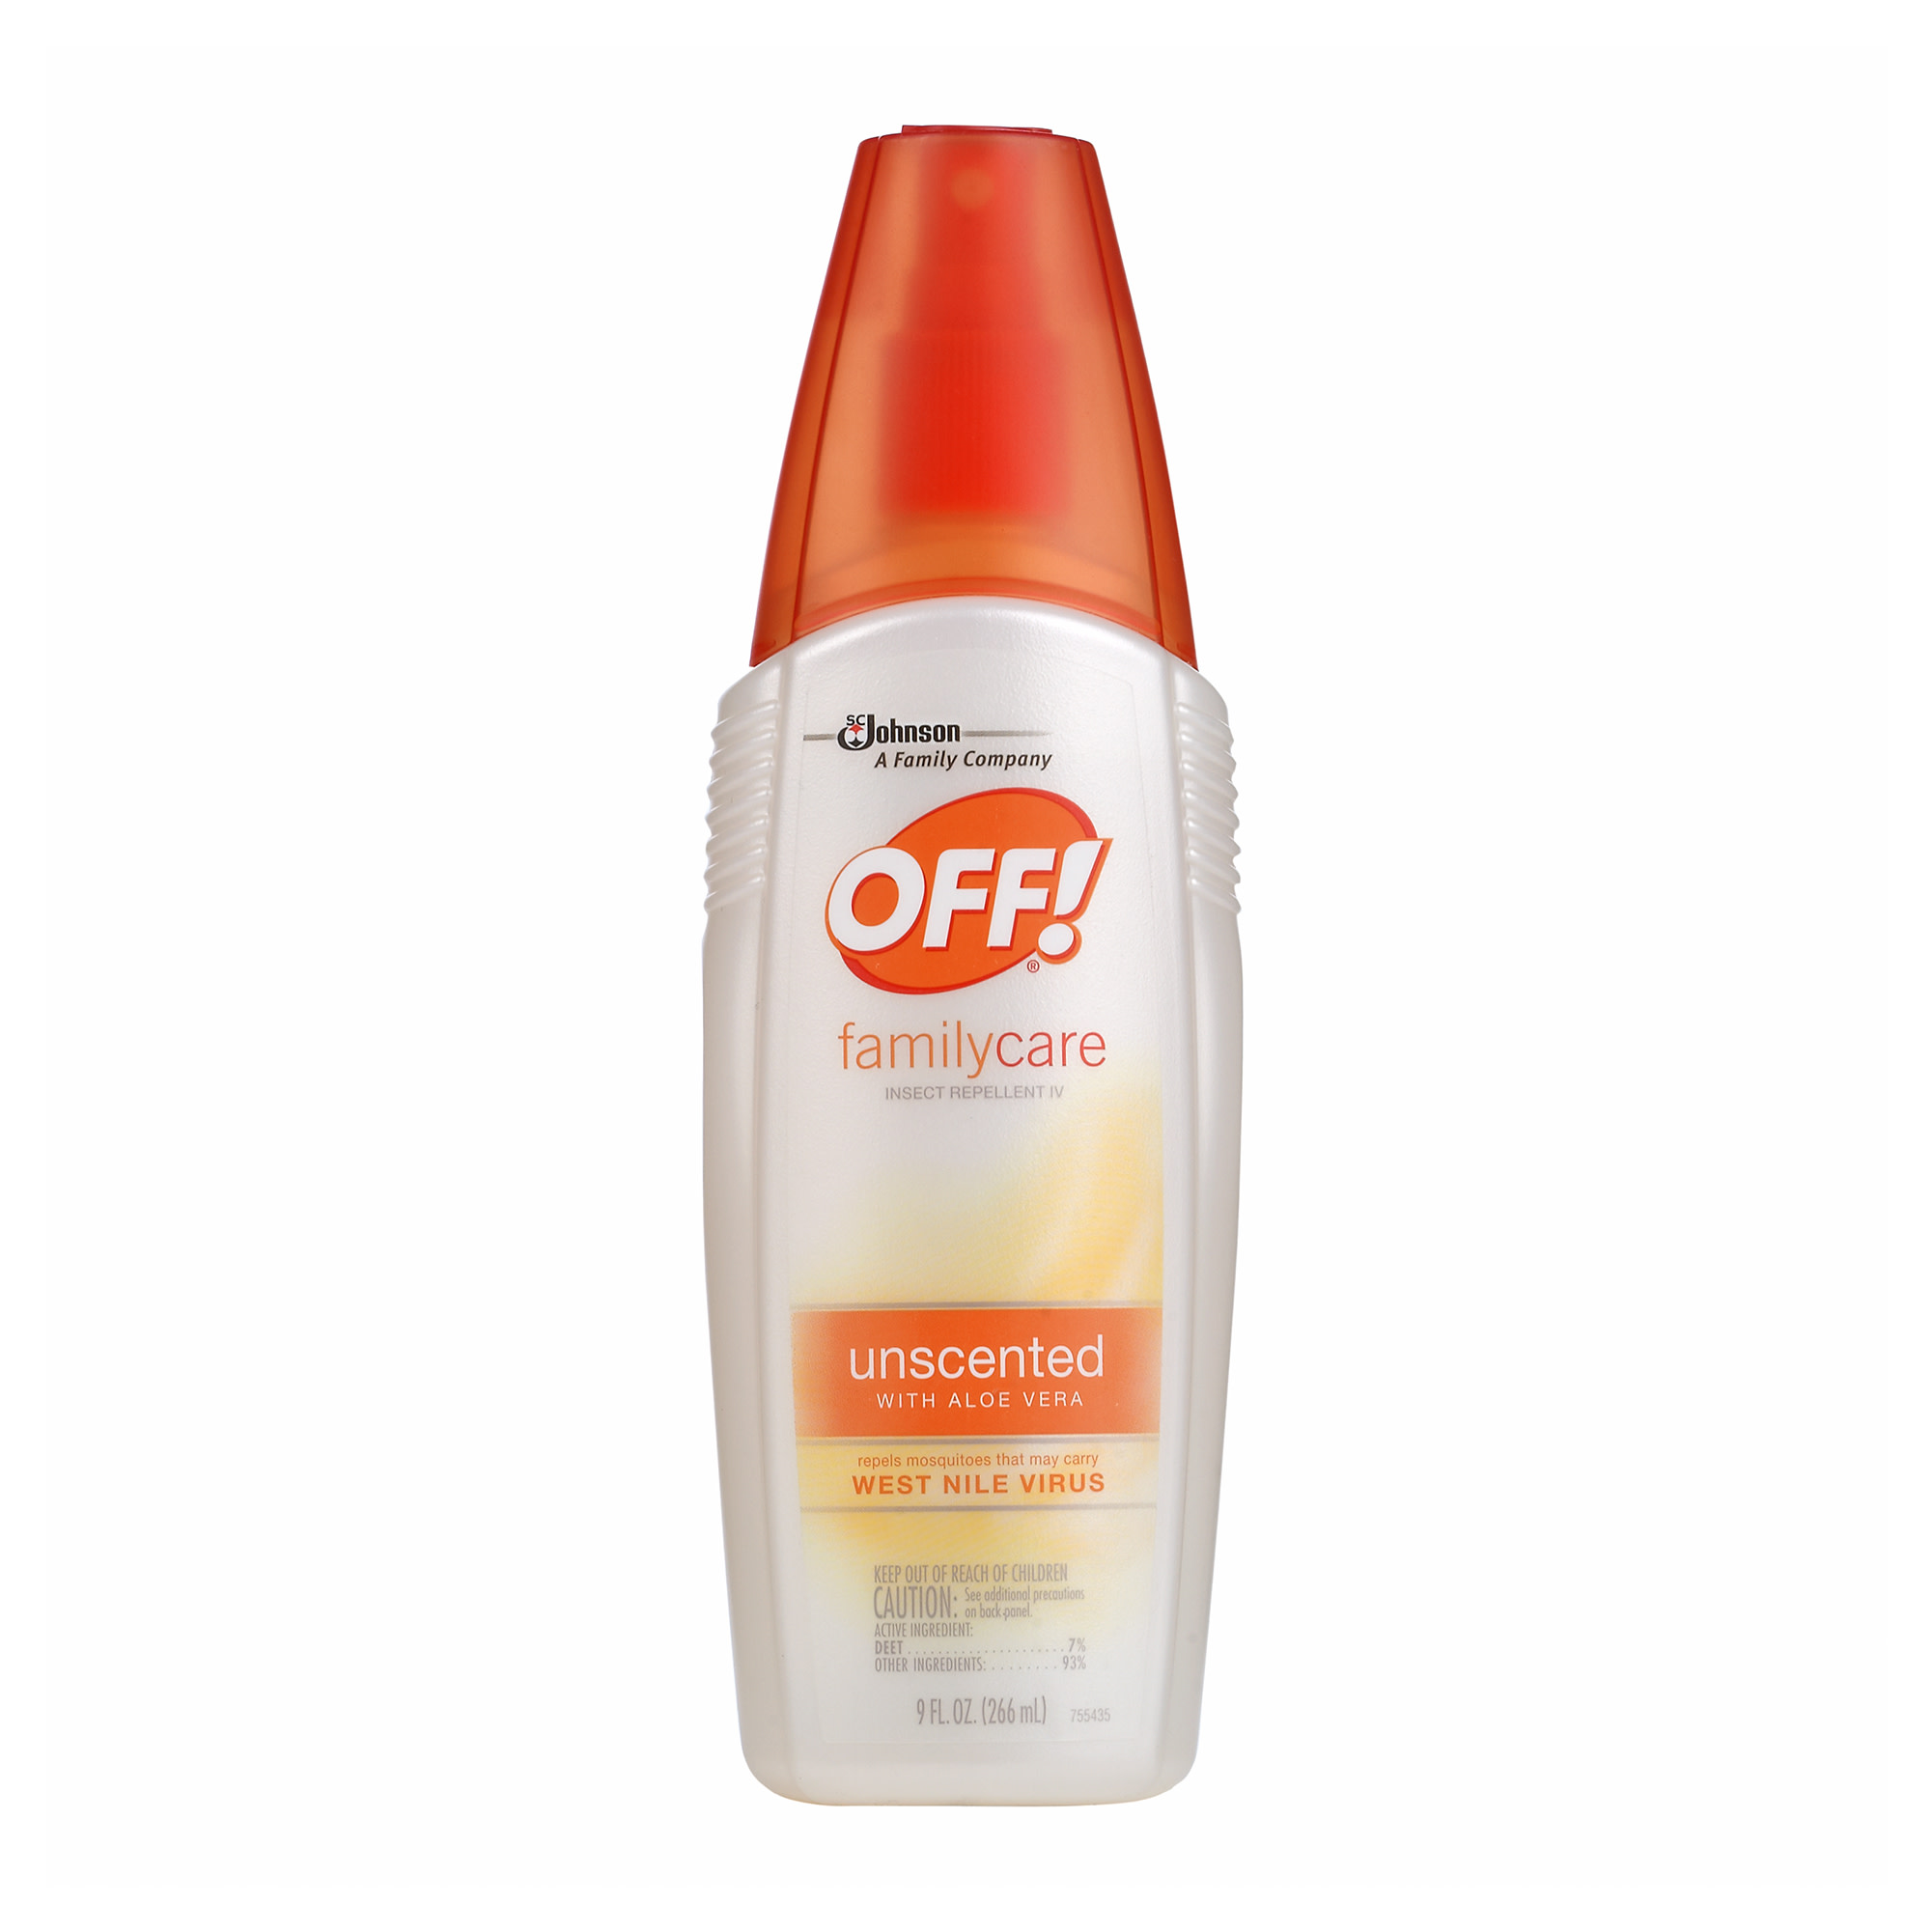 OFF! FamilyCare Insect Repellent IV, Unscented, 9 Ounces, 1 count